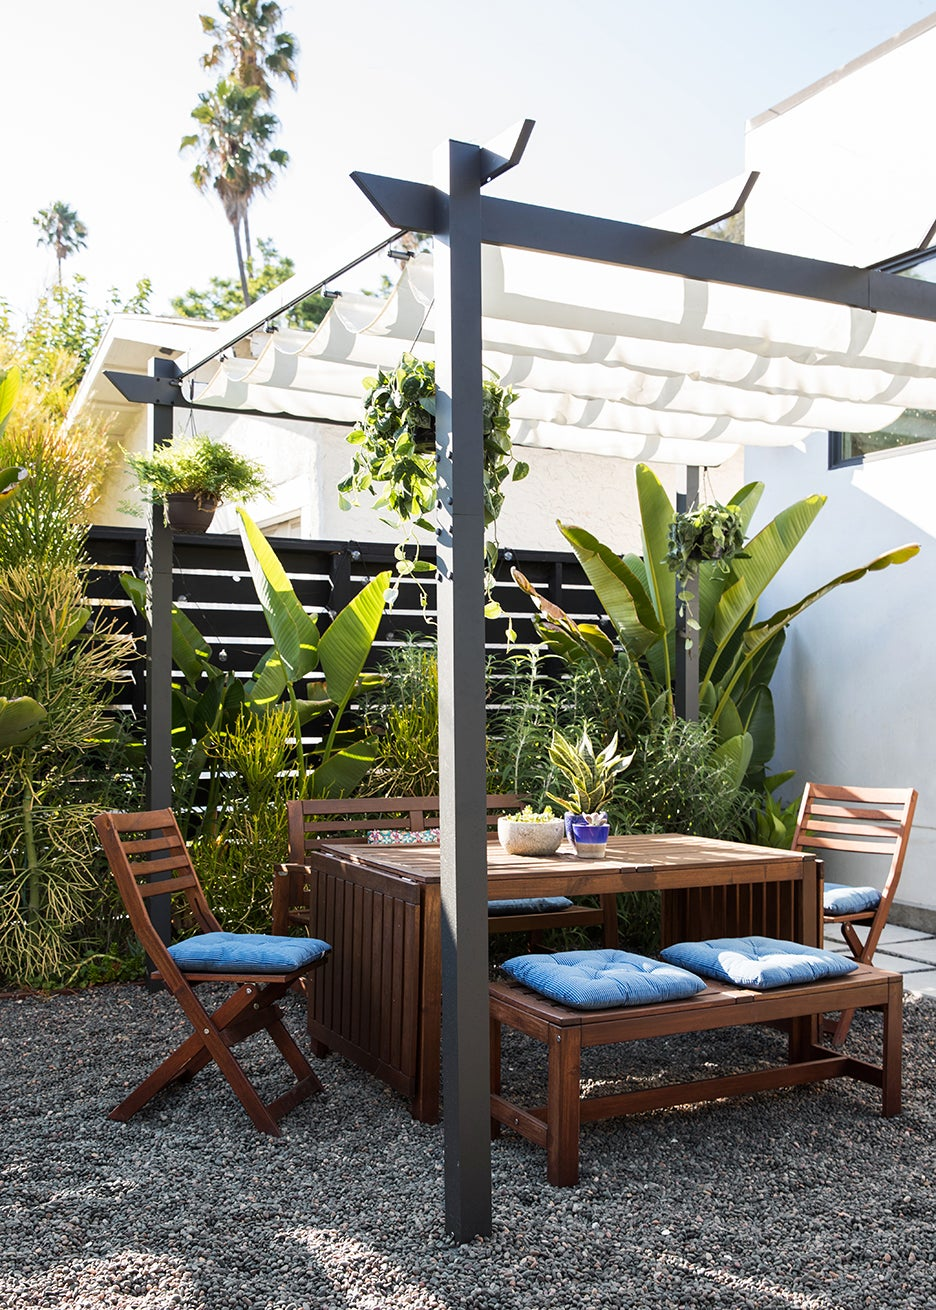 outdoor dining area with wooden furniture